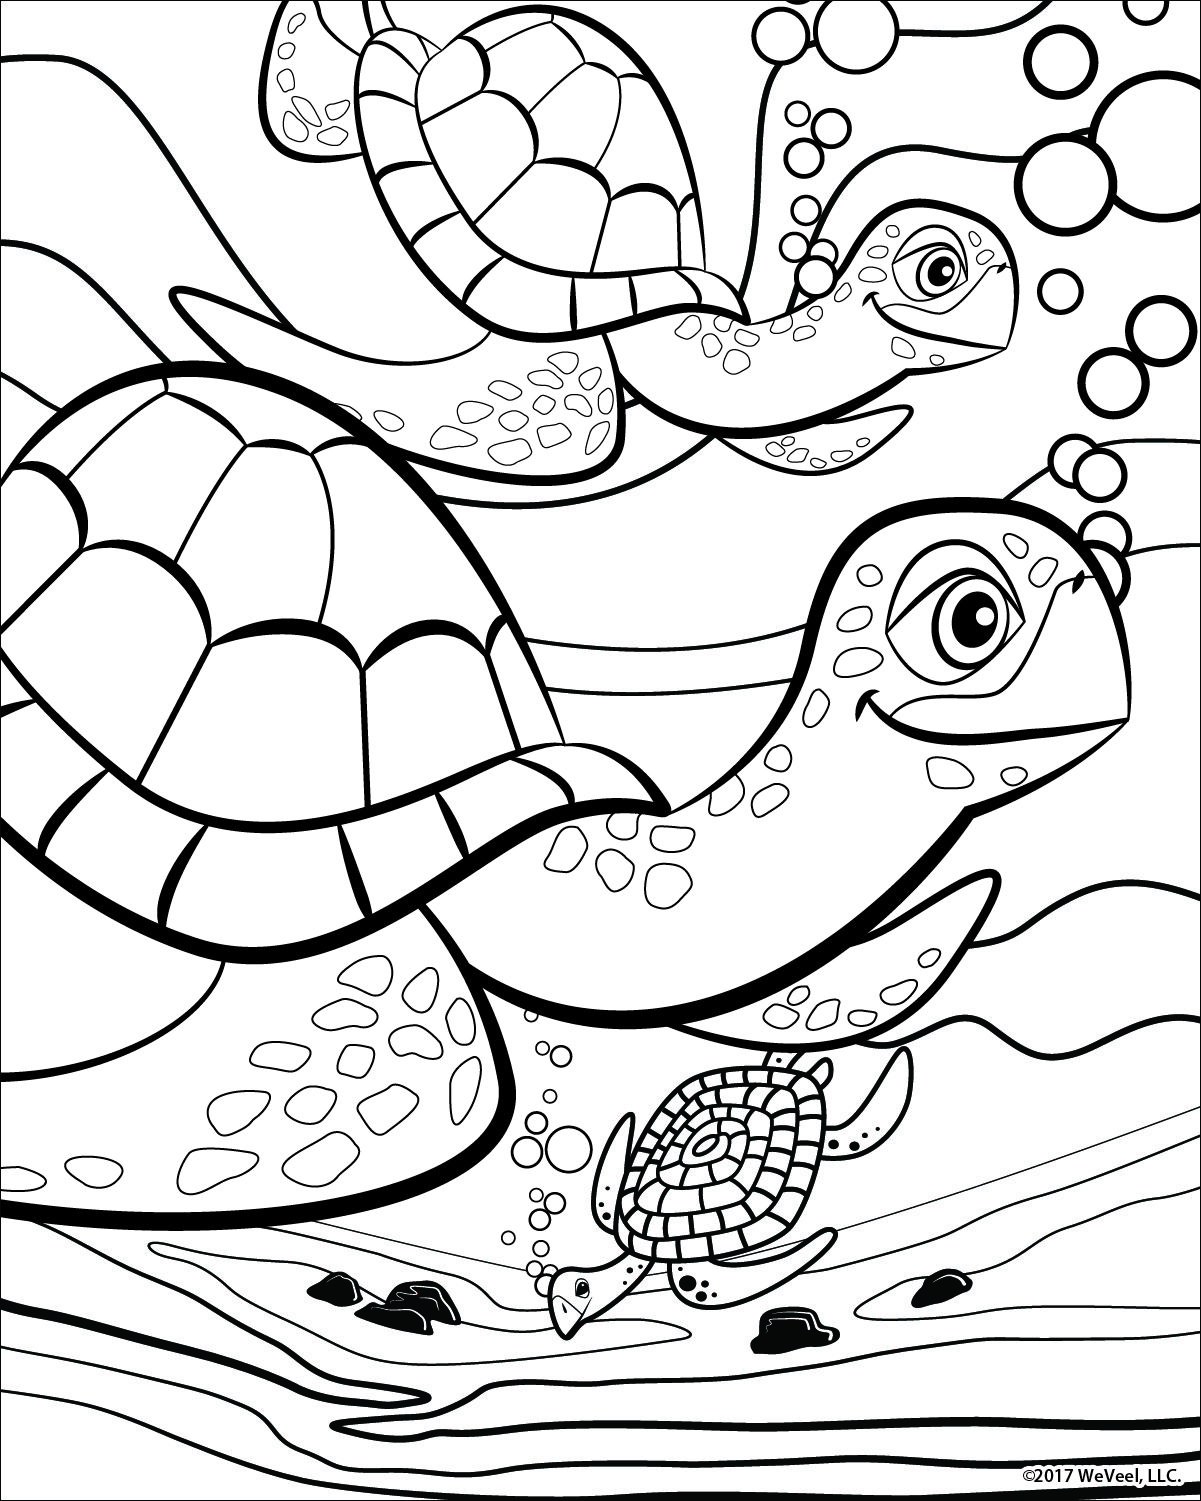 Free Printable Coloring Pages At Scentos Com Cute Coloring Pages To Download And Print For Free Cute Coloring Pages Turtle Coloring Pages Summer Coloring Pages